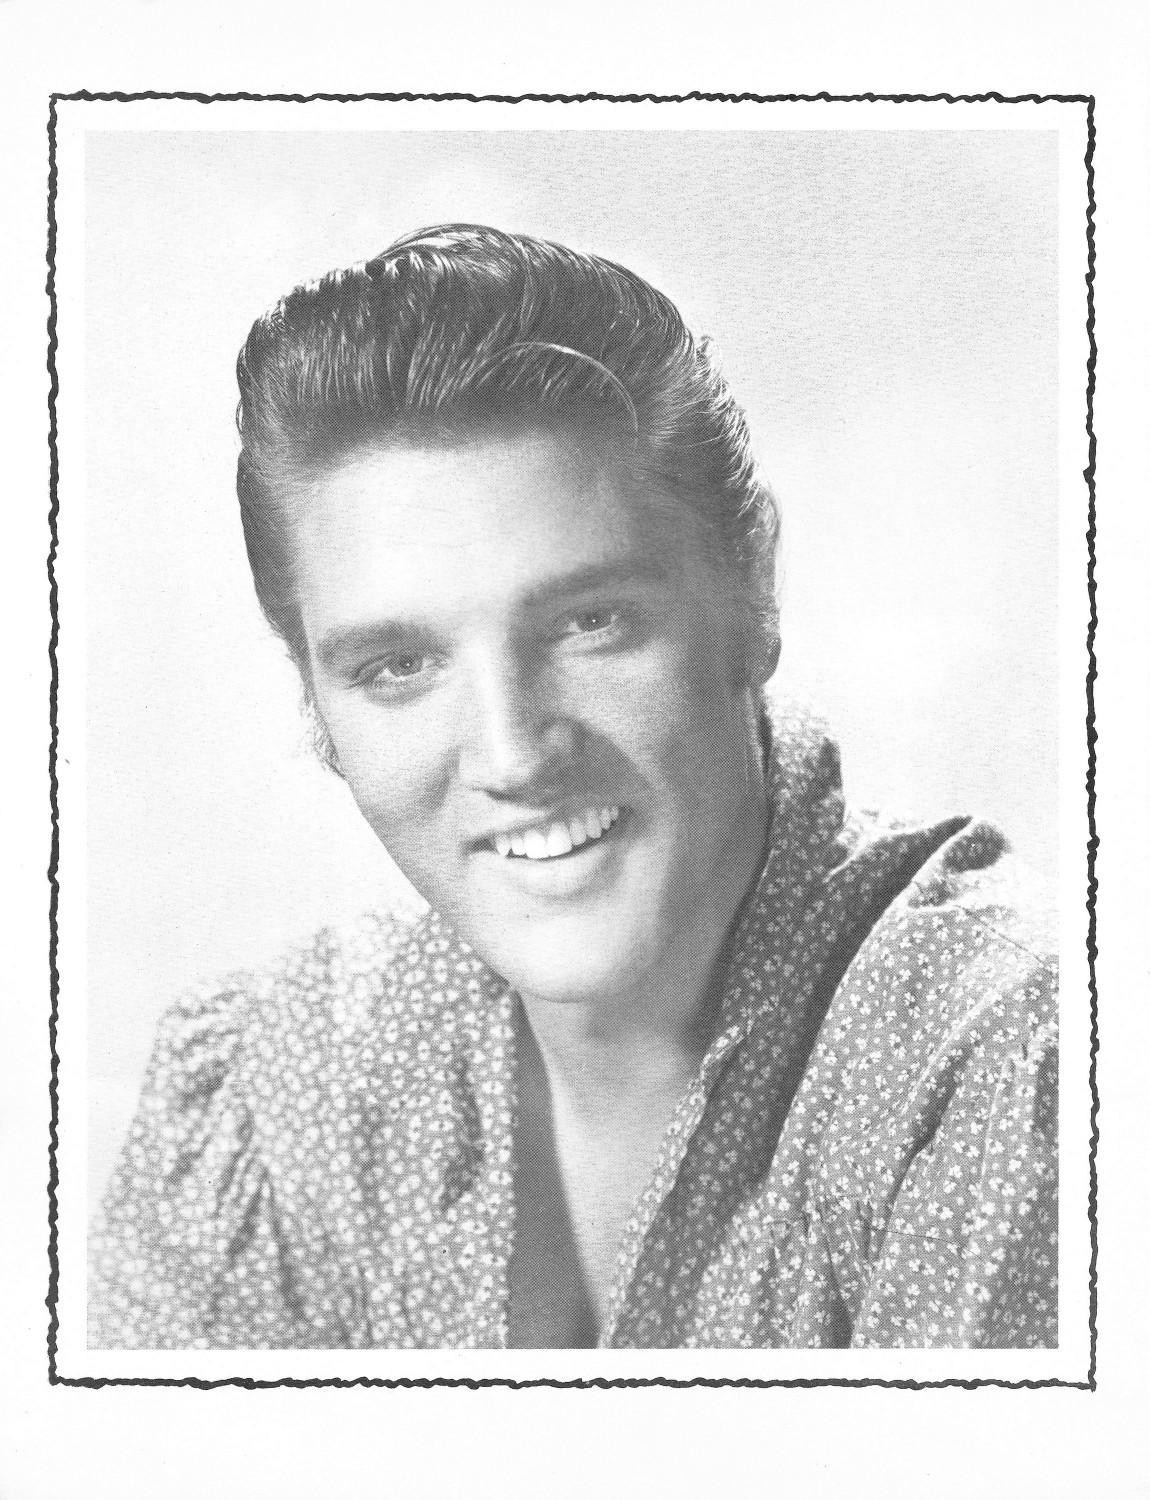 Elvis Presley Souvenir Photo Album (Juan Luis) 14